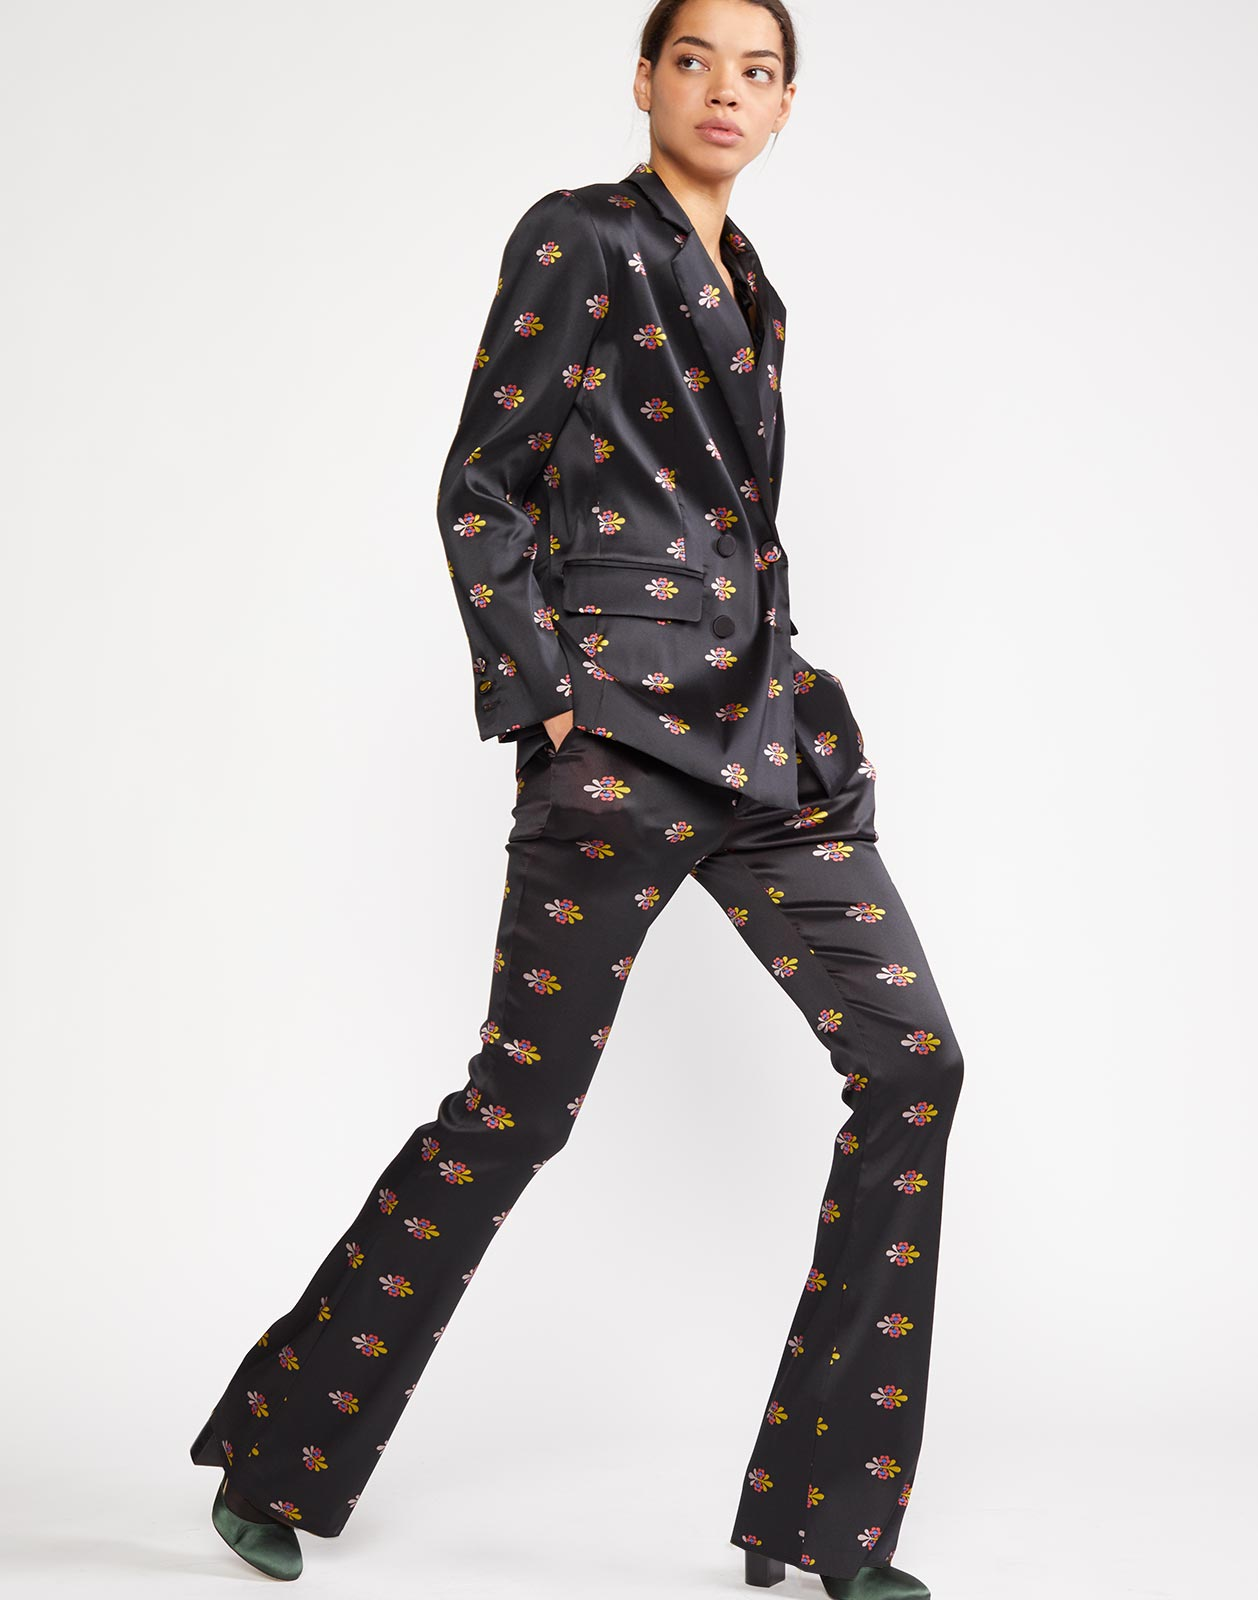 Side view of the Nathalie Jacquard Trouser